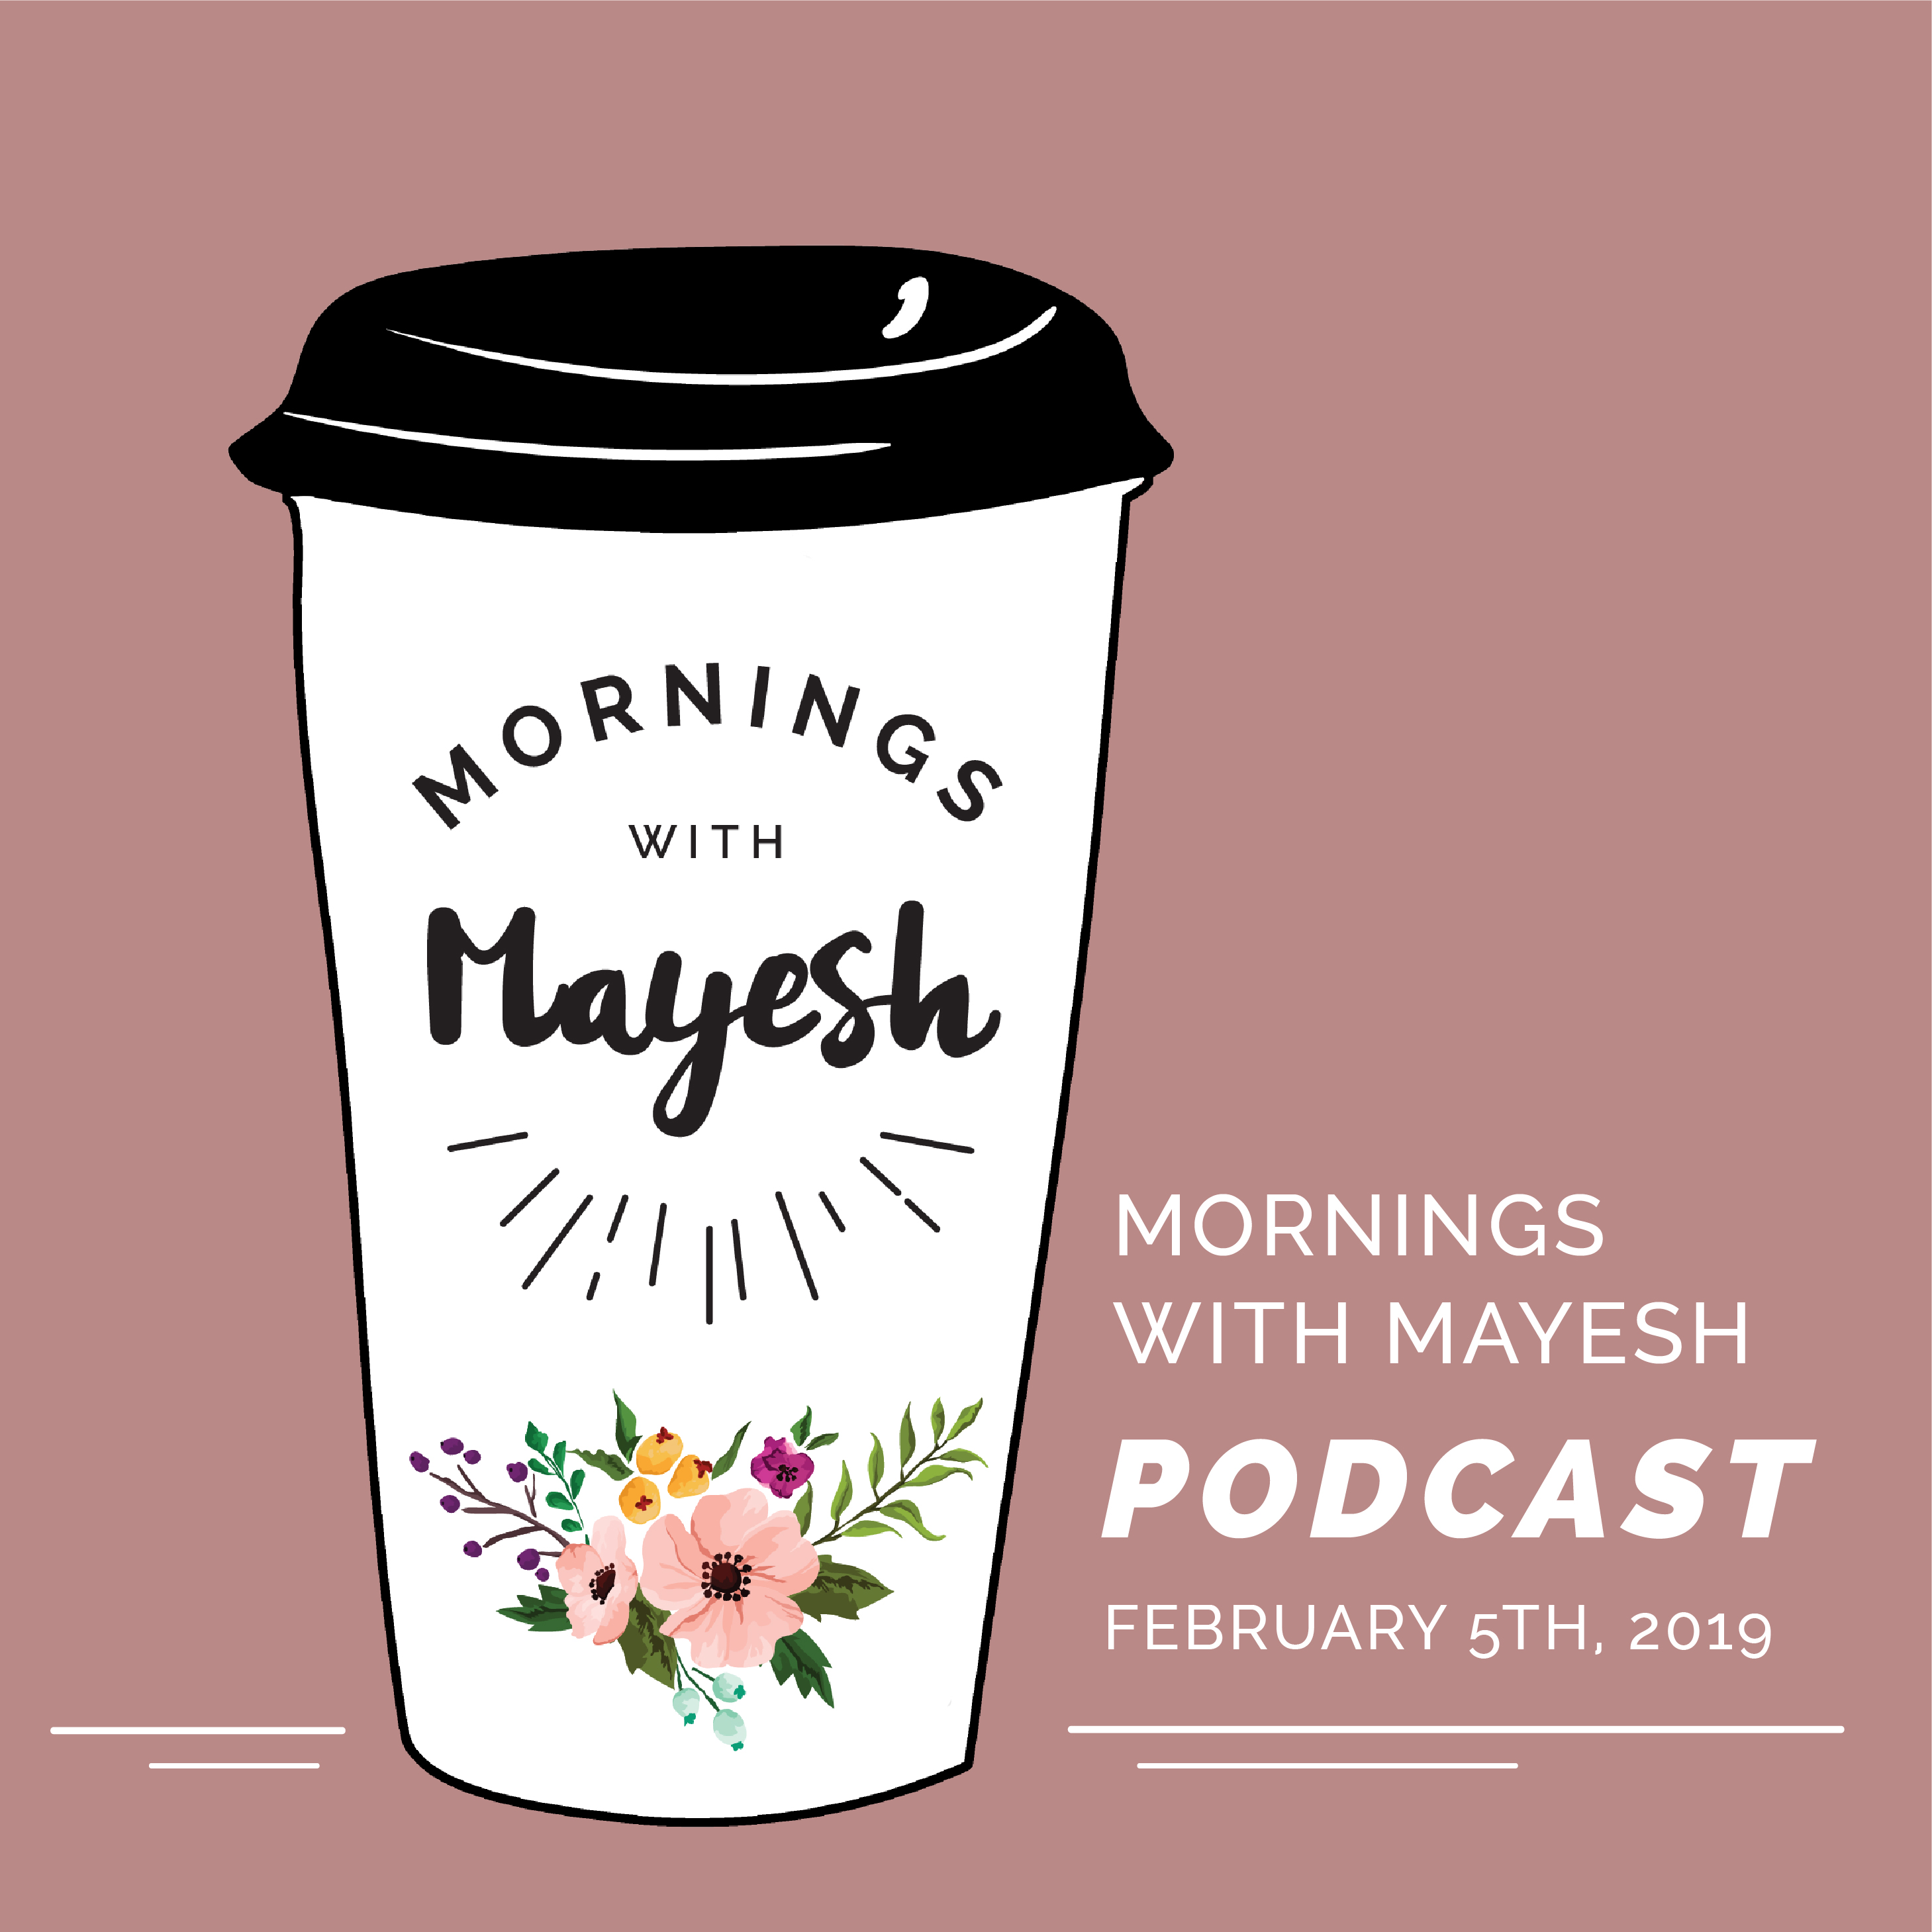 Artwork for Mornings with Mayesh: Sarah Campbell